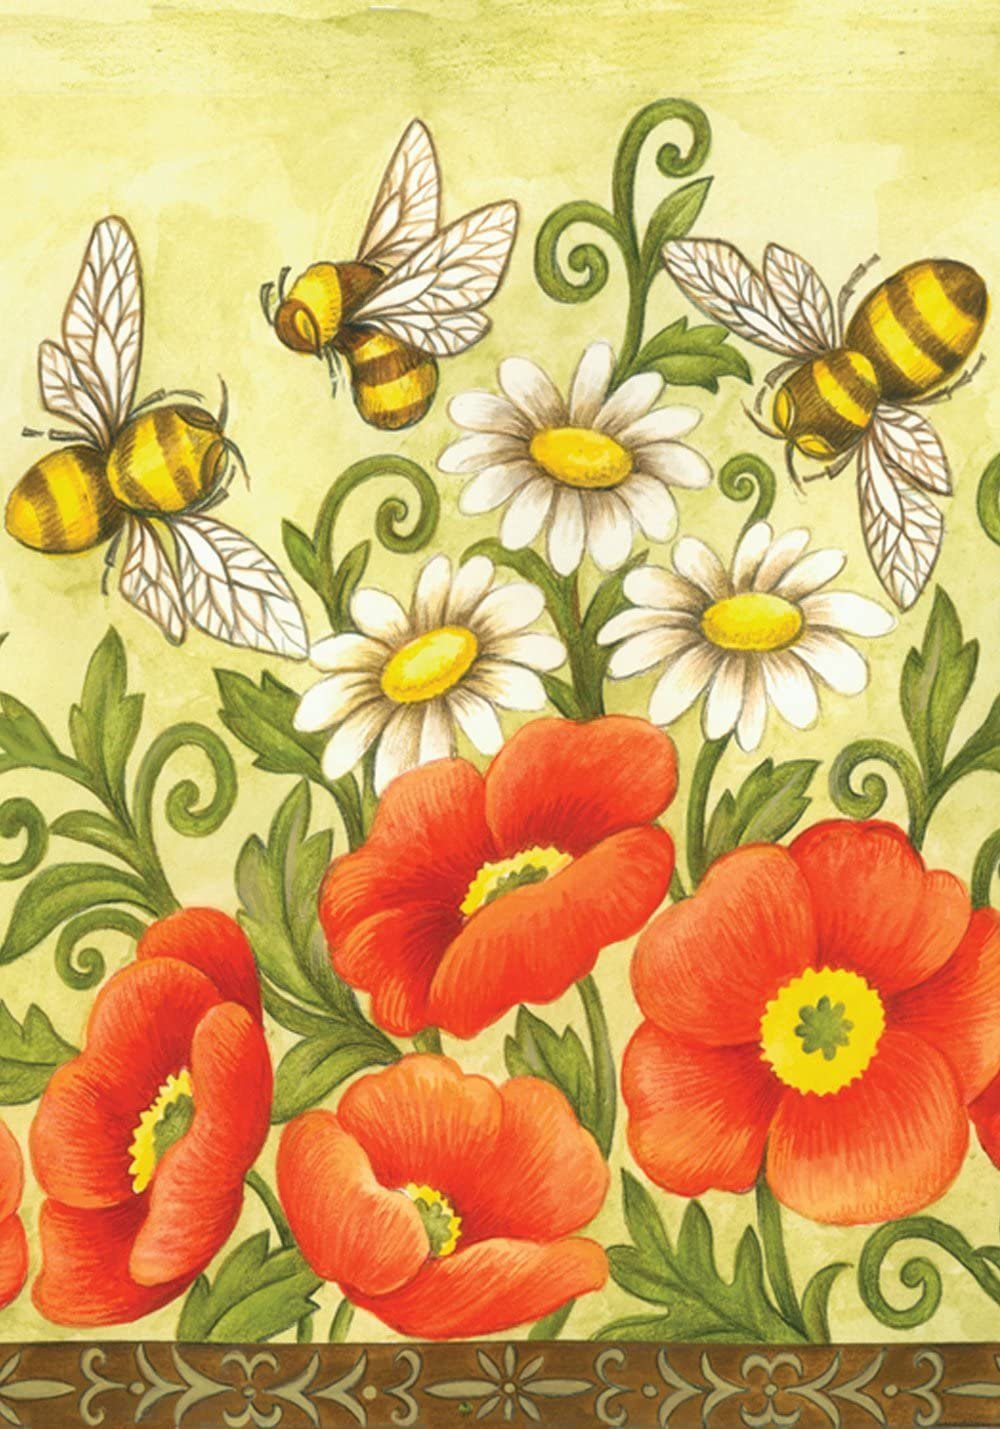 Toland Home Garden Bees and Wildflowers Decorativ Max 62% OFF 18 x Inch Super sale period limited 12.5